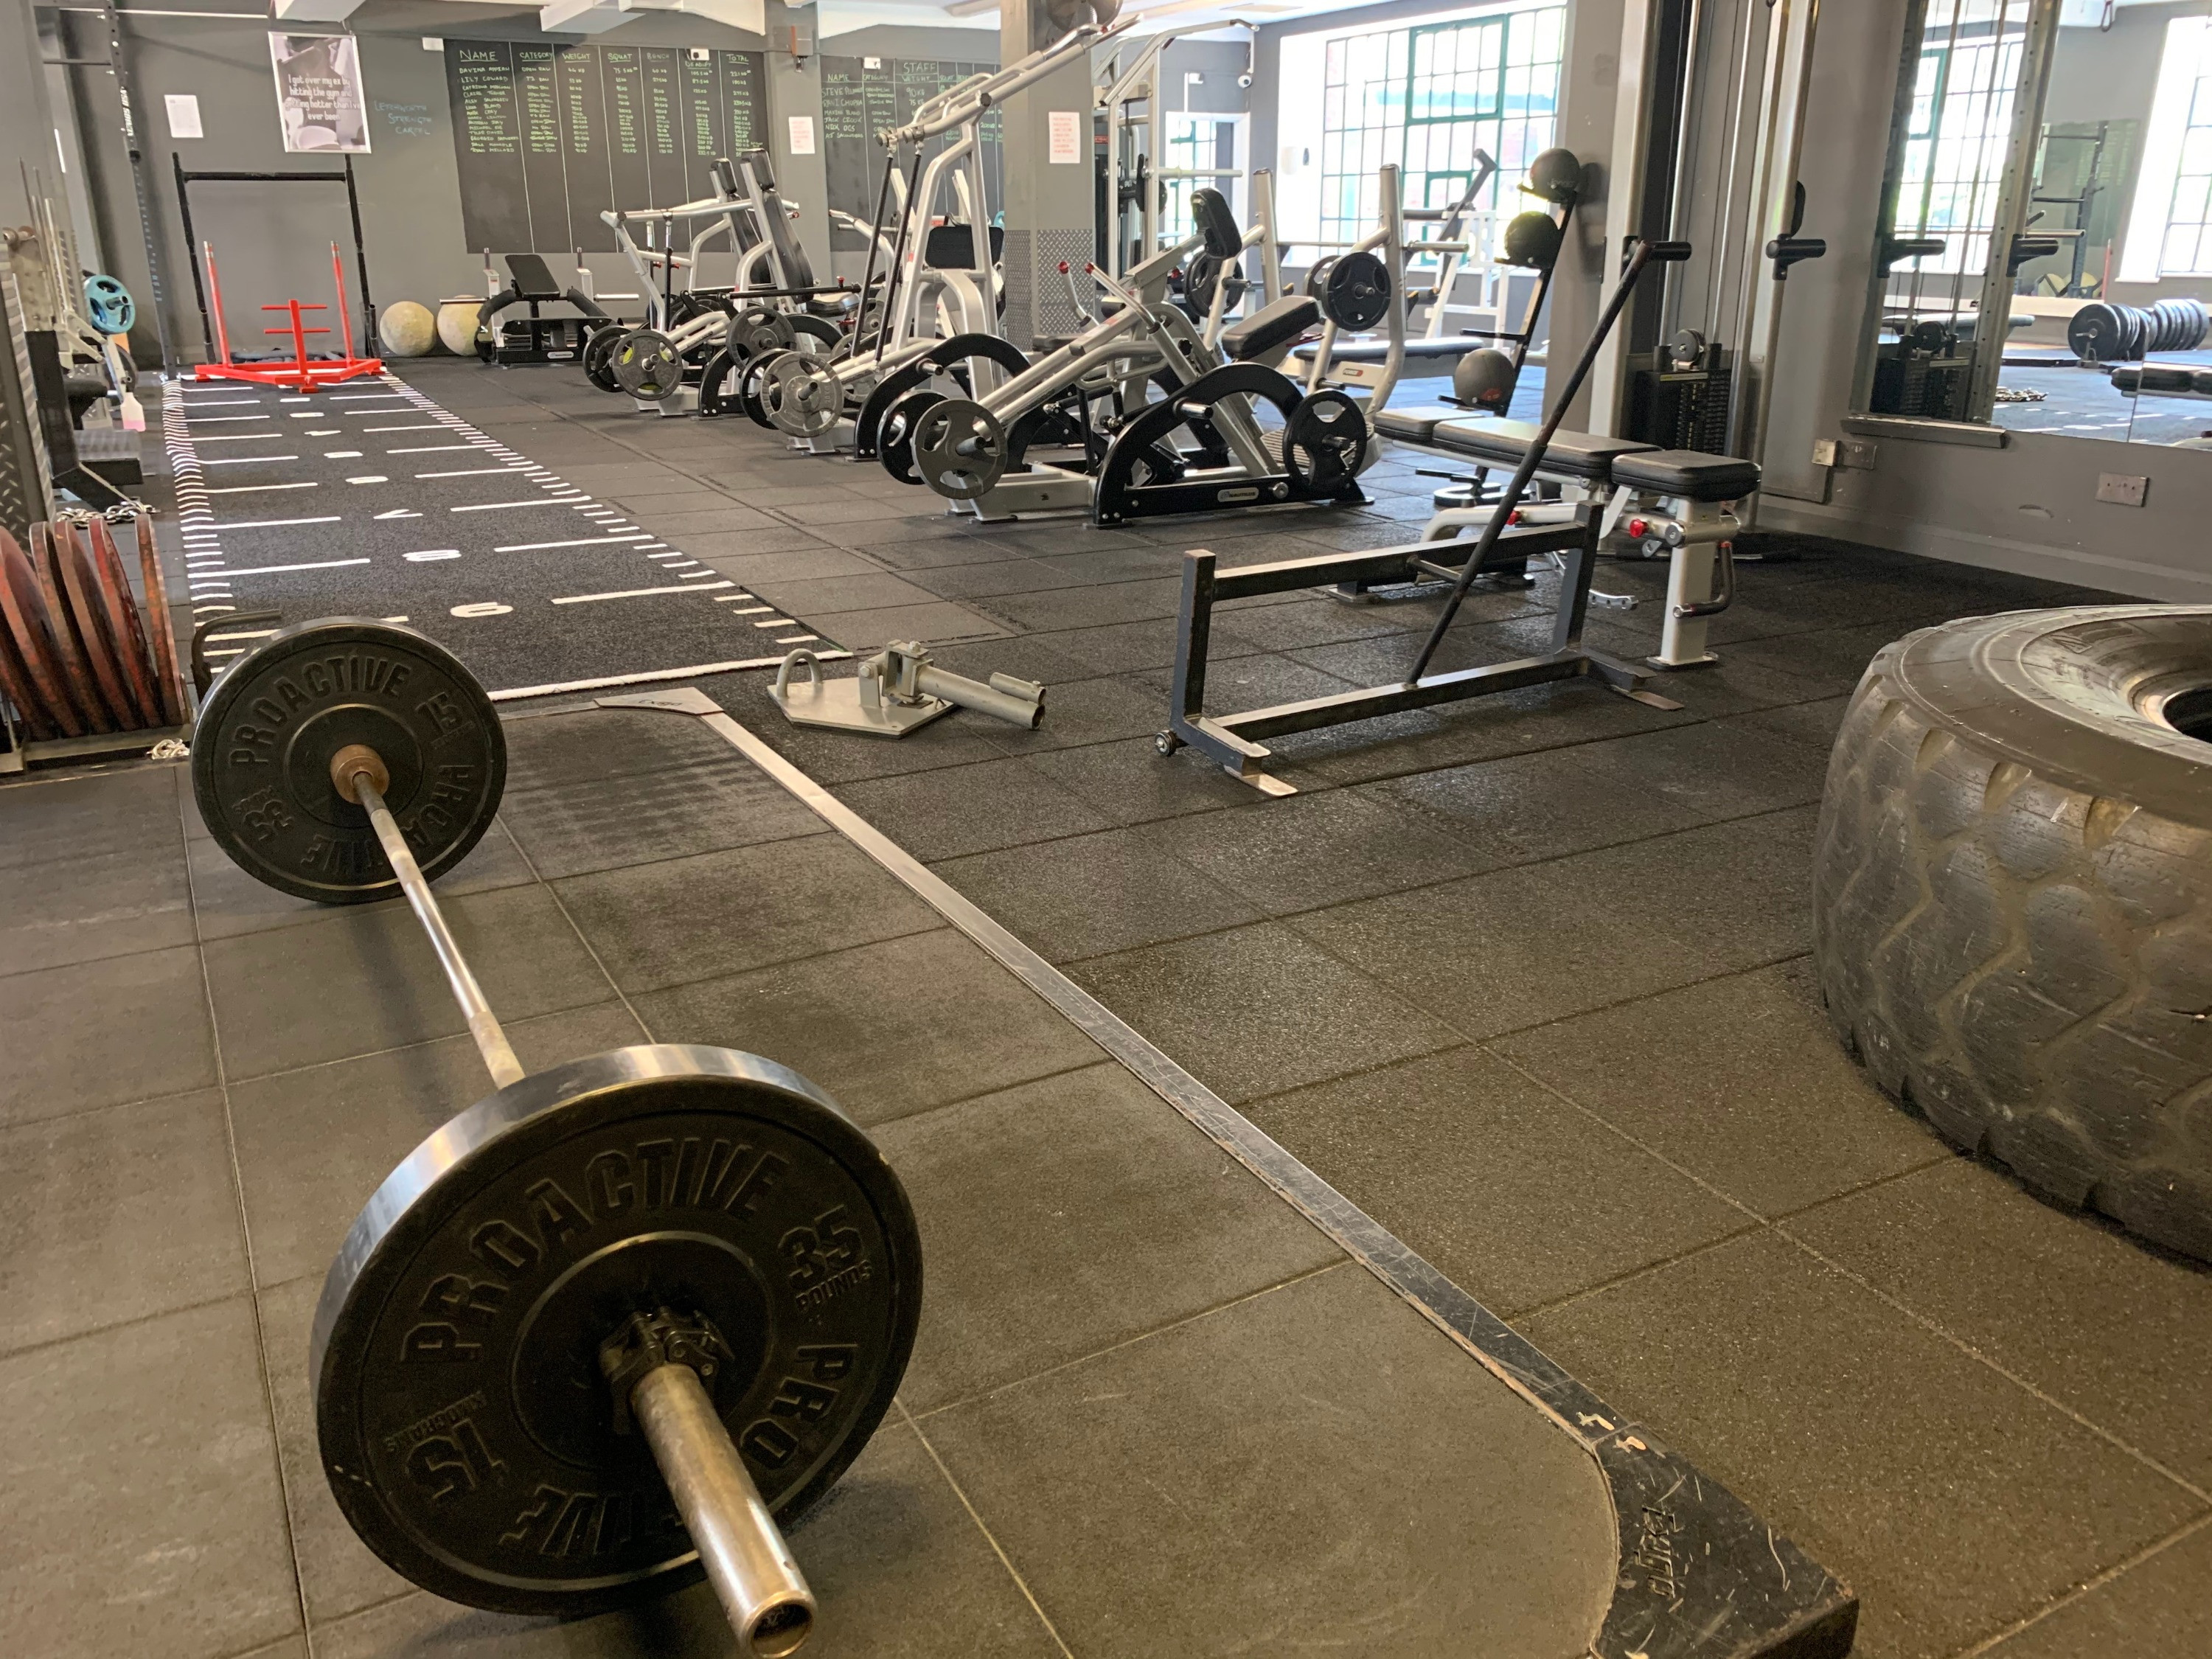 1to1 PERSONAL TRAINING SESSION